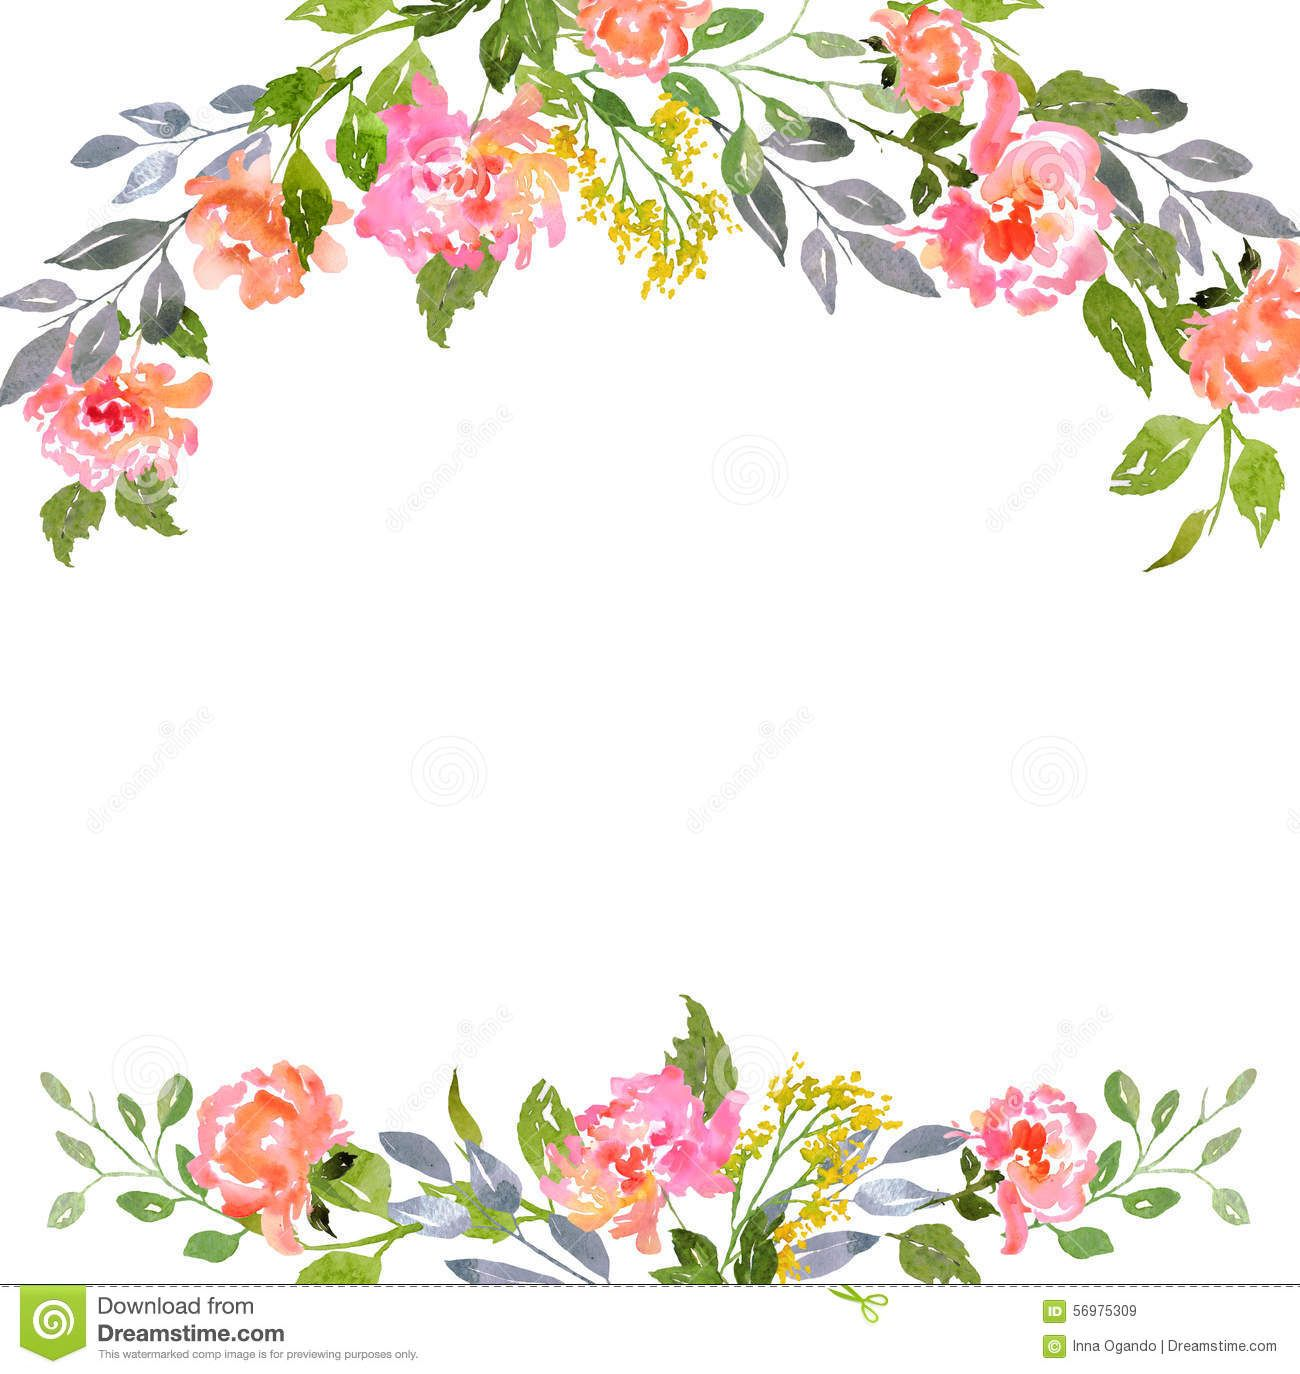 picture about Watercolor Floral Border Paper Printable called Watercolor Floral Border Paper Printable - menu template structure